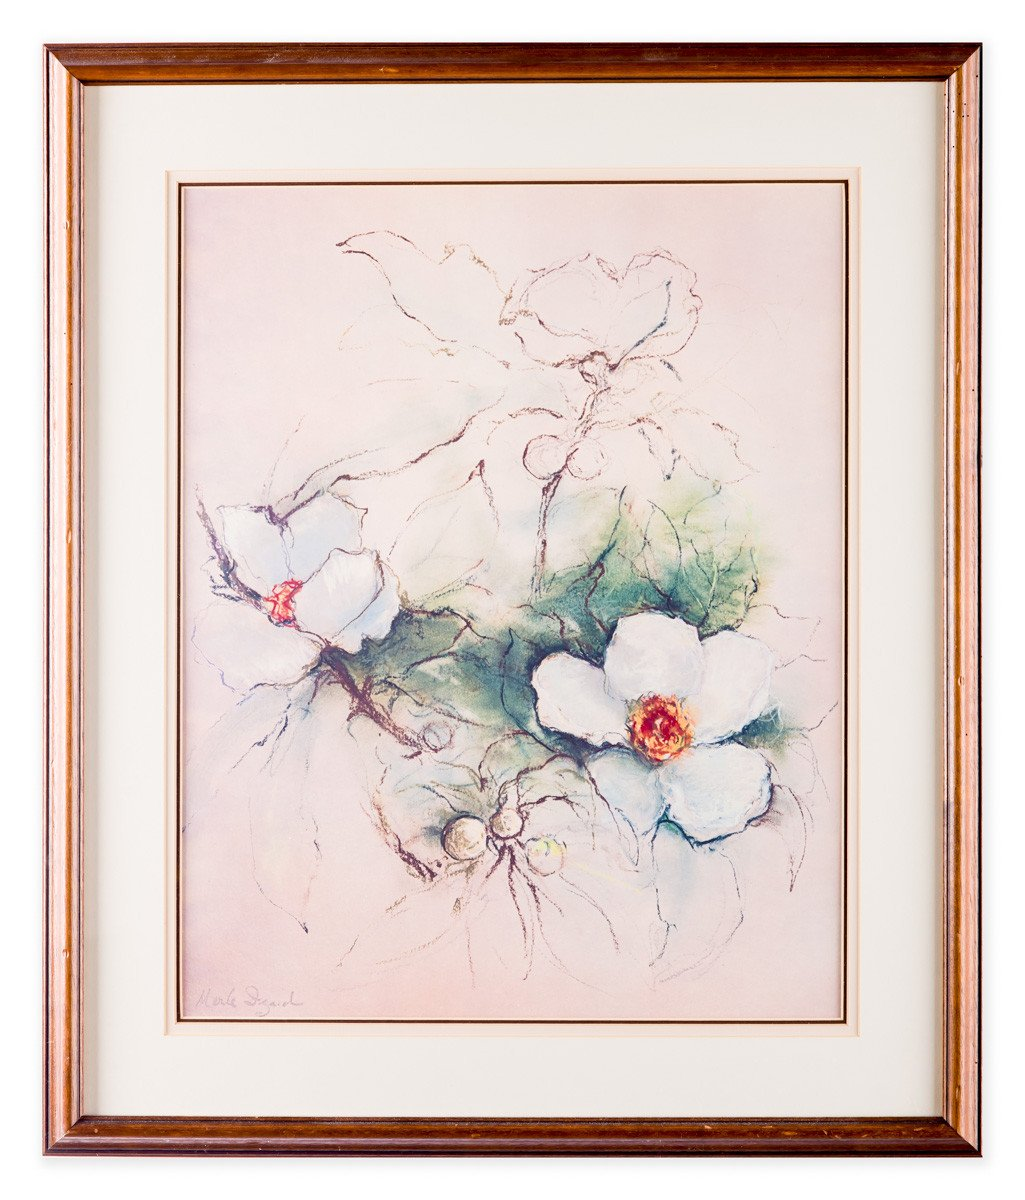 Sweet Magnolia - by Merle Izard - Lithograph - Framed Art